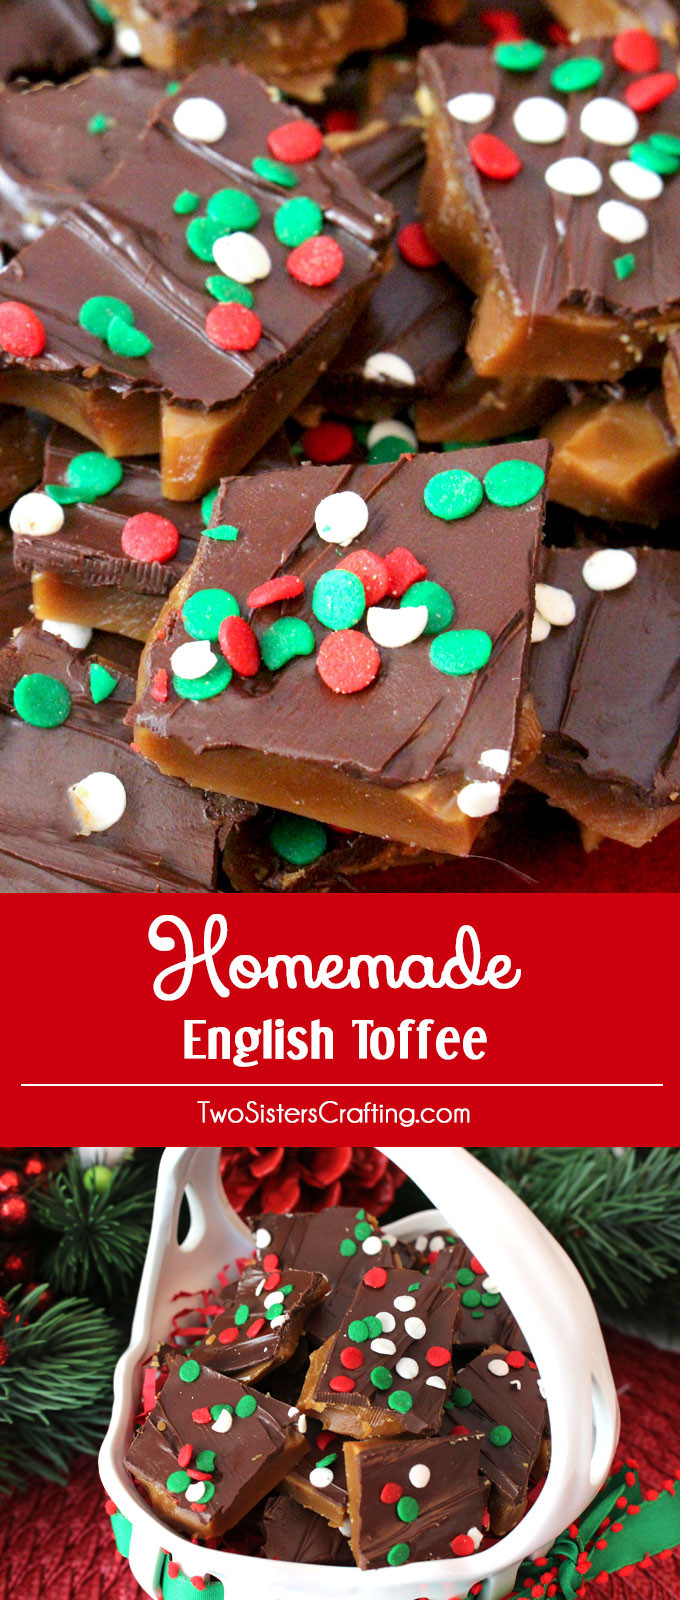 Diy Christmas Desserts  Homemade English Toffee Two Sisters